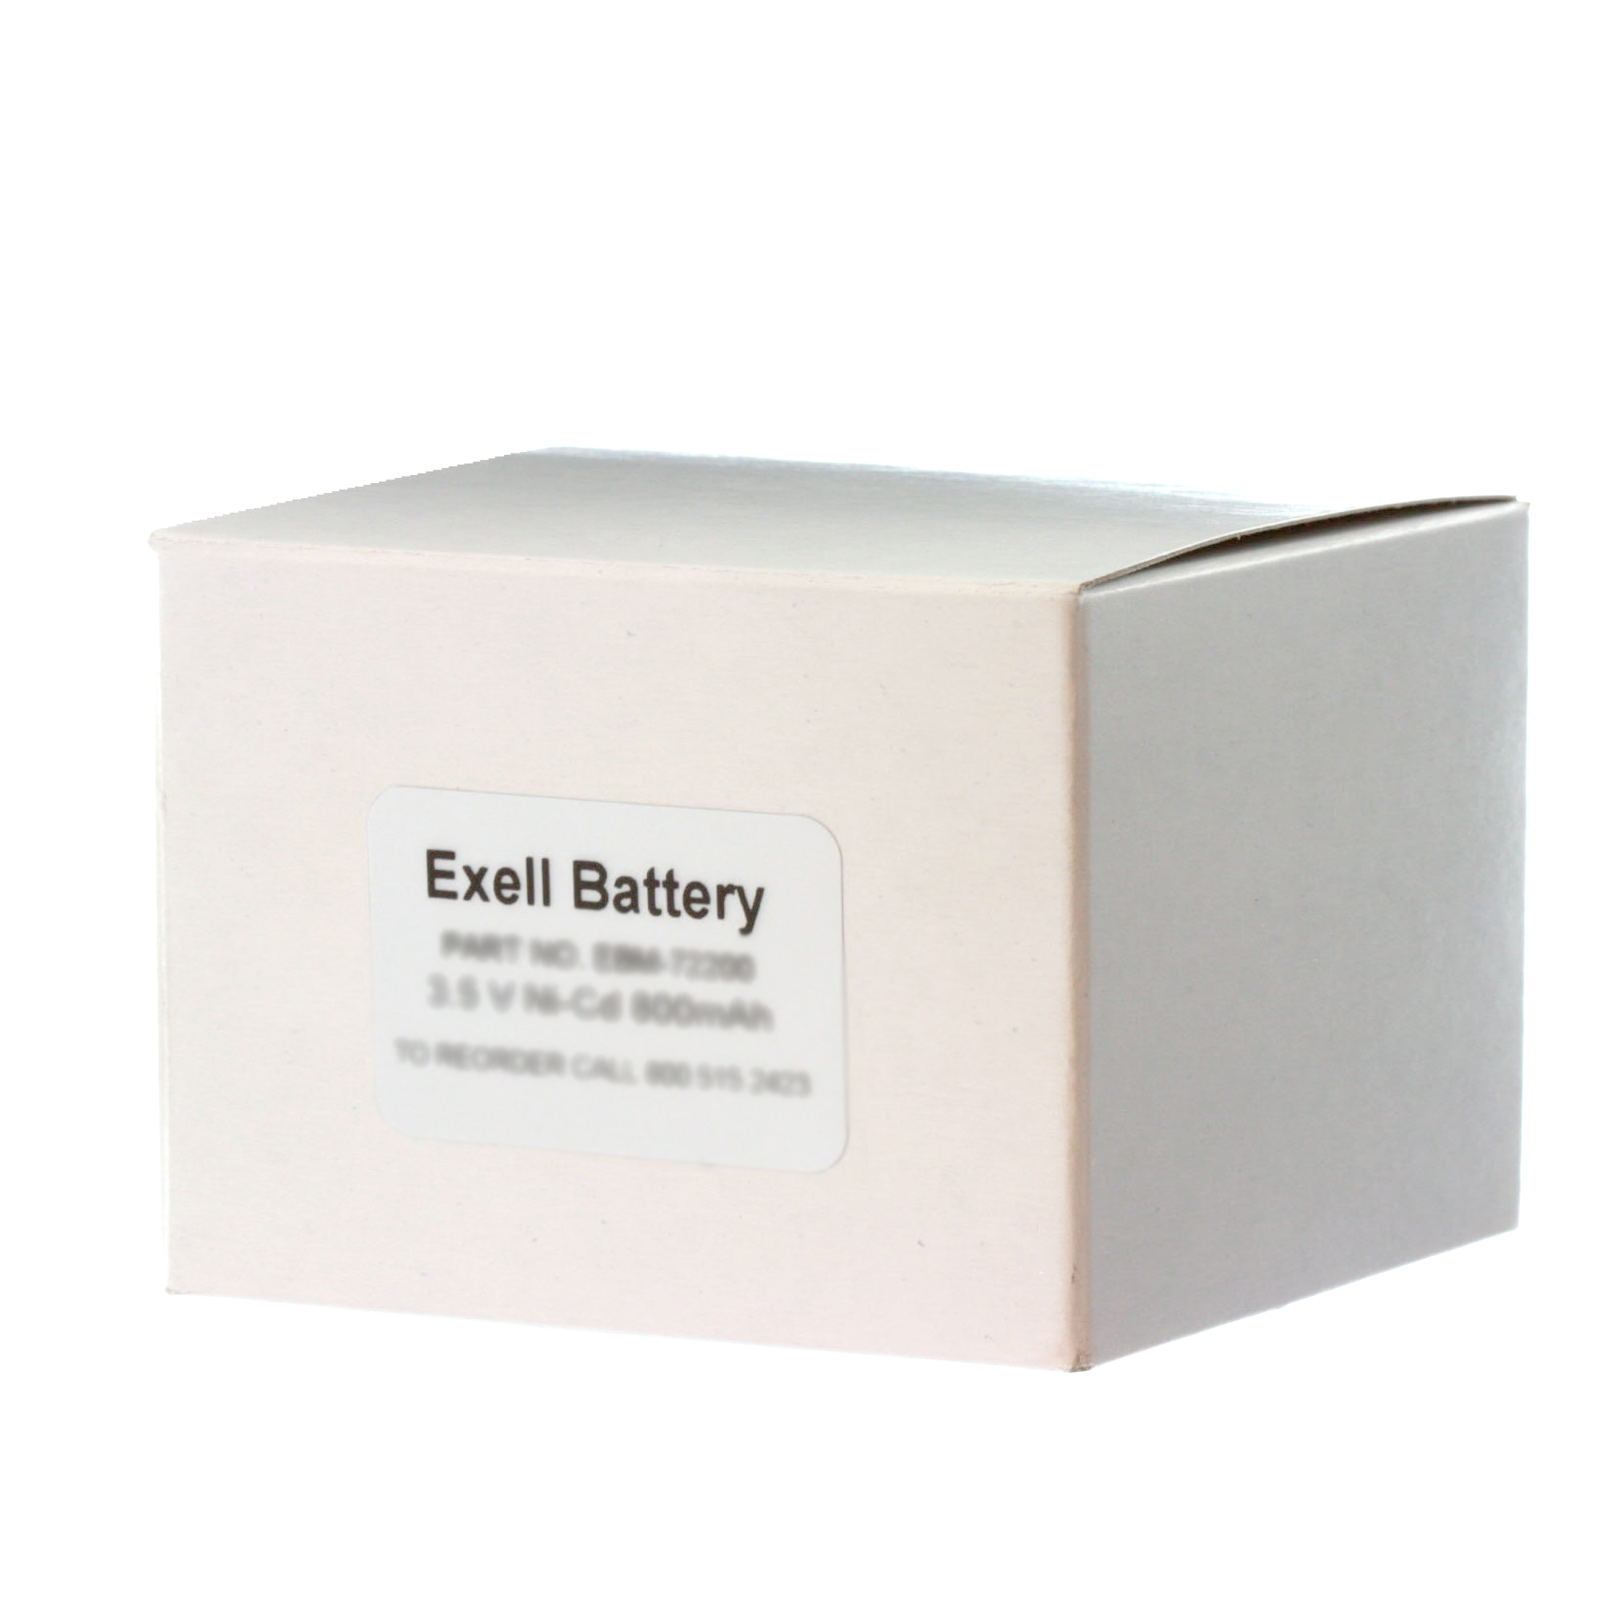 New 2 4v Nicd Razor Battery For Norelco 895rx 950rx